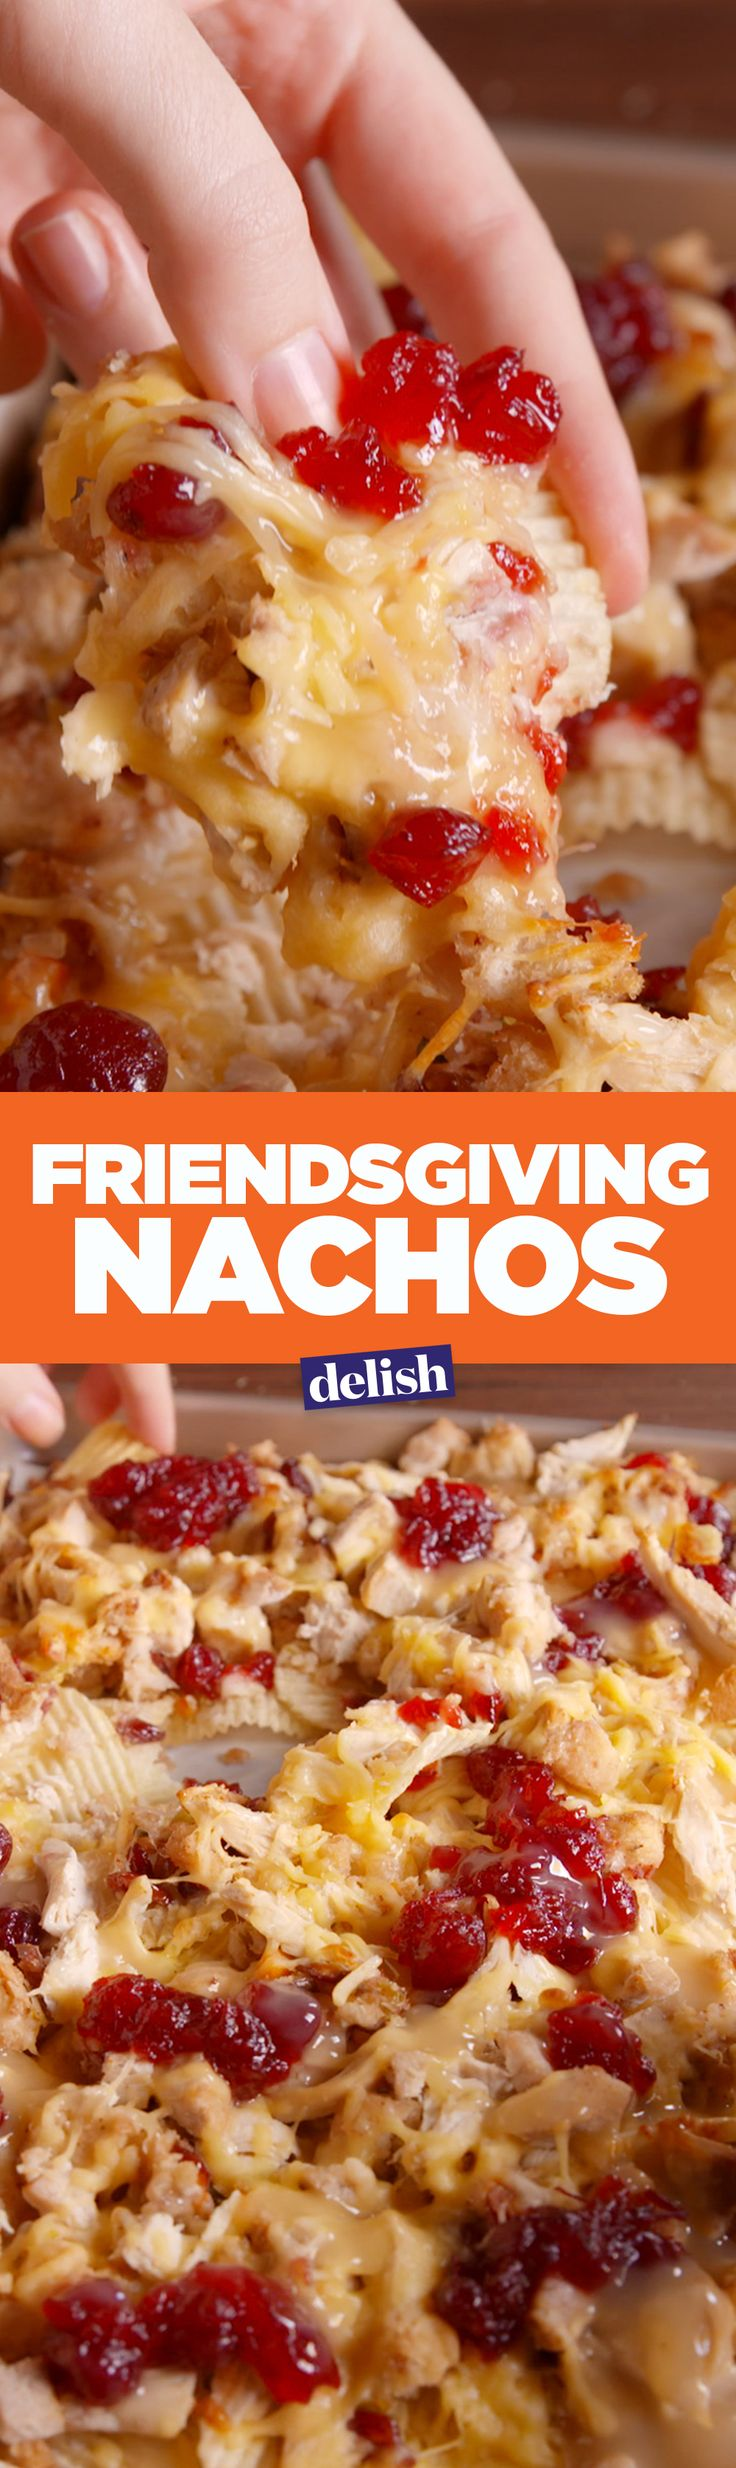 Friendsgiving nachos are the party version of Thanksgiving dinner. Get the recipe on Delish.com.